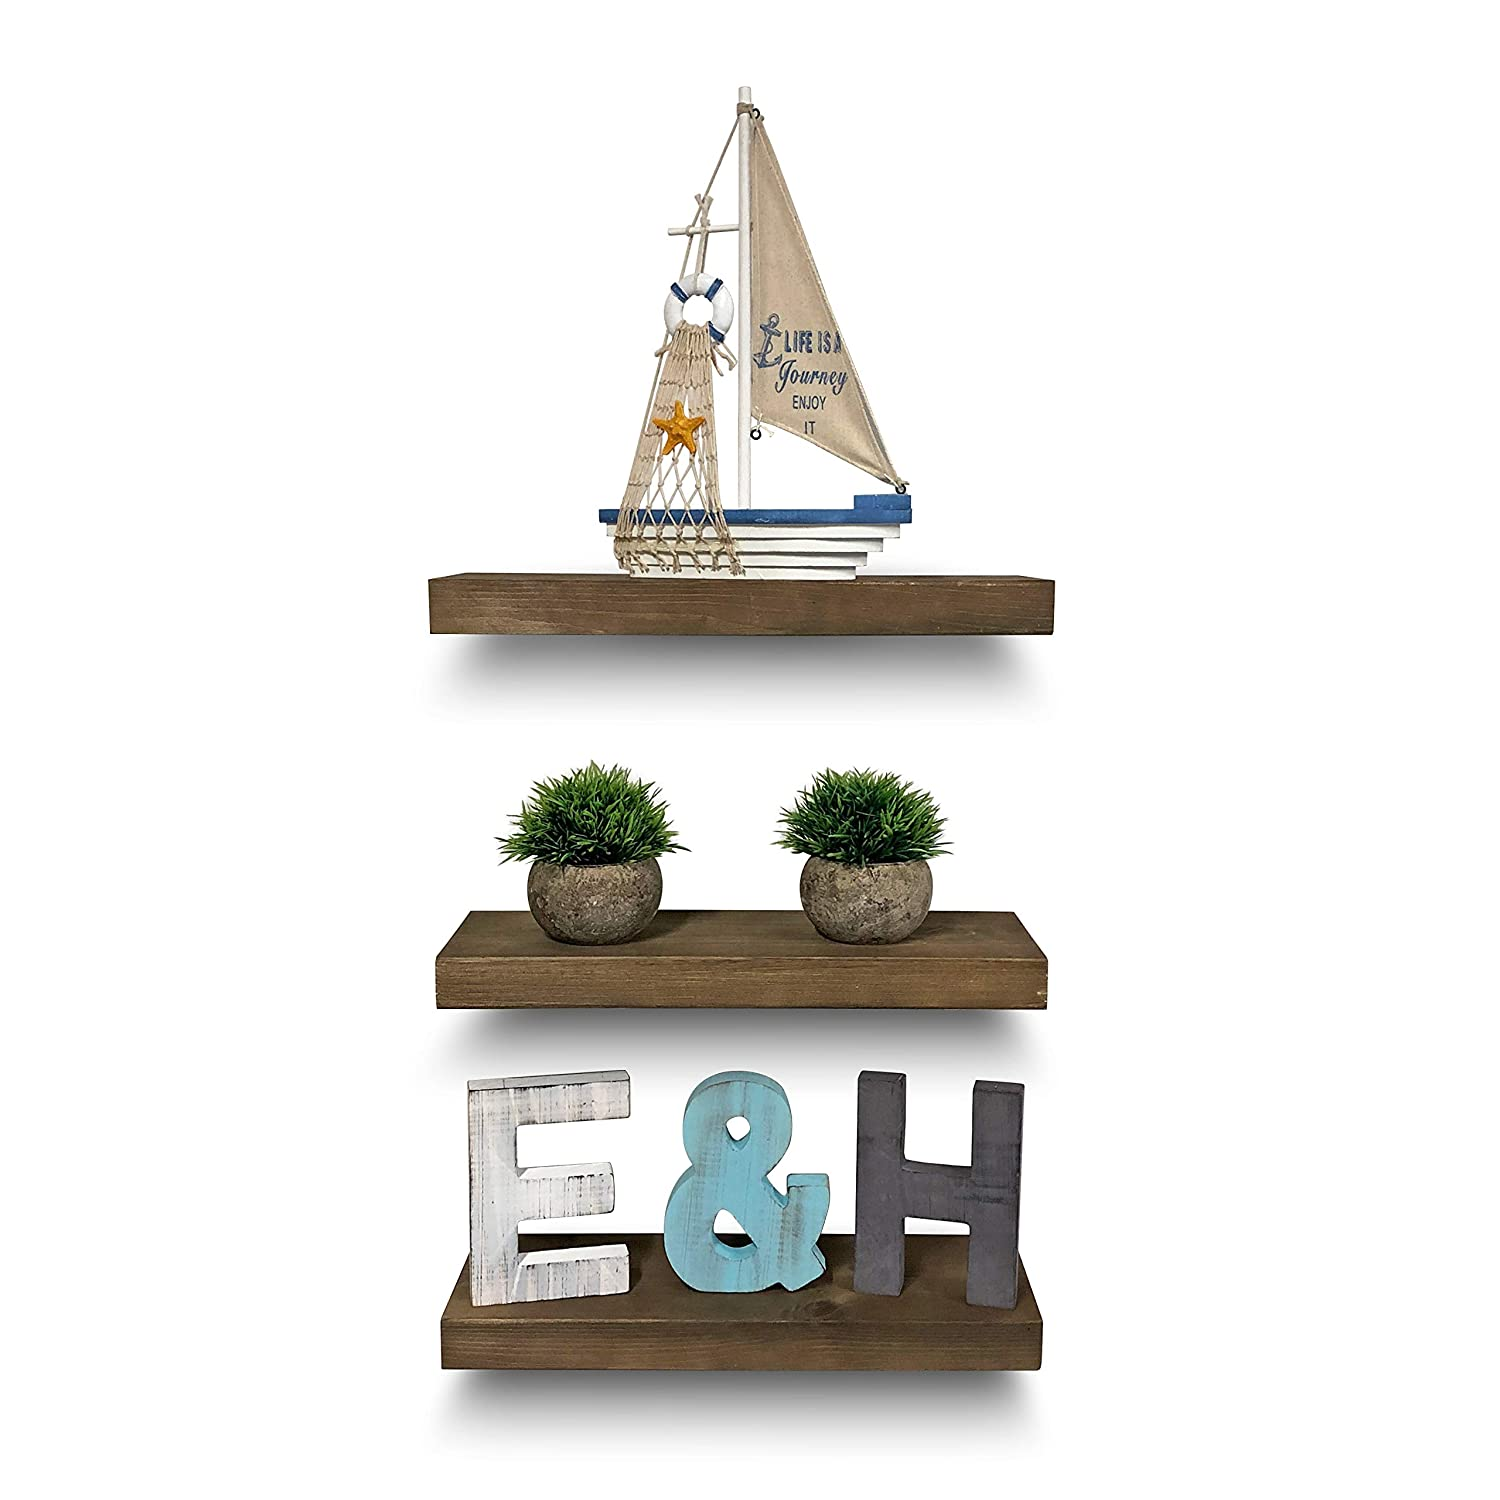 "Rustic Farmhouse 3 Tier Floating Wood Shelf - Real Hardwood Floating Wall Shelves (Set of 3), Hardware and Fasteners Included (White Oak, 16"")"